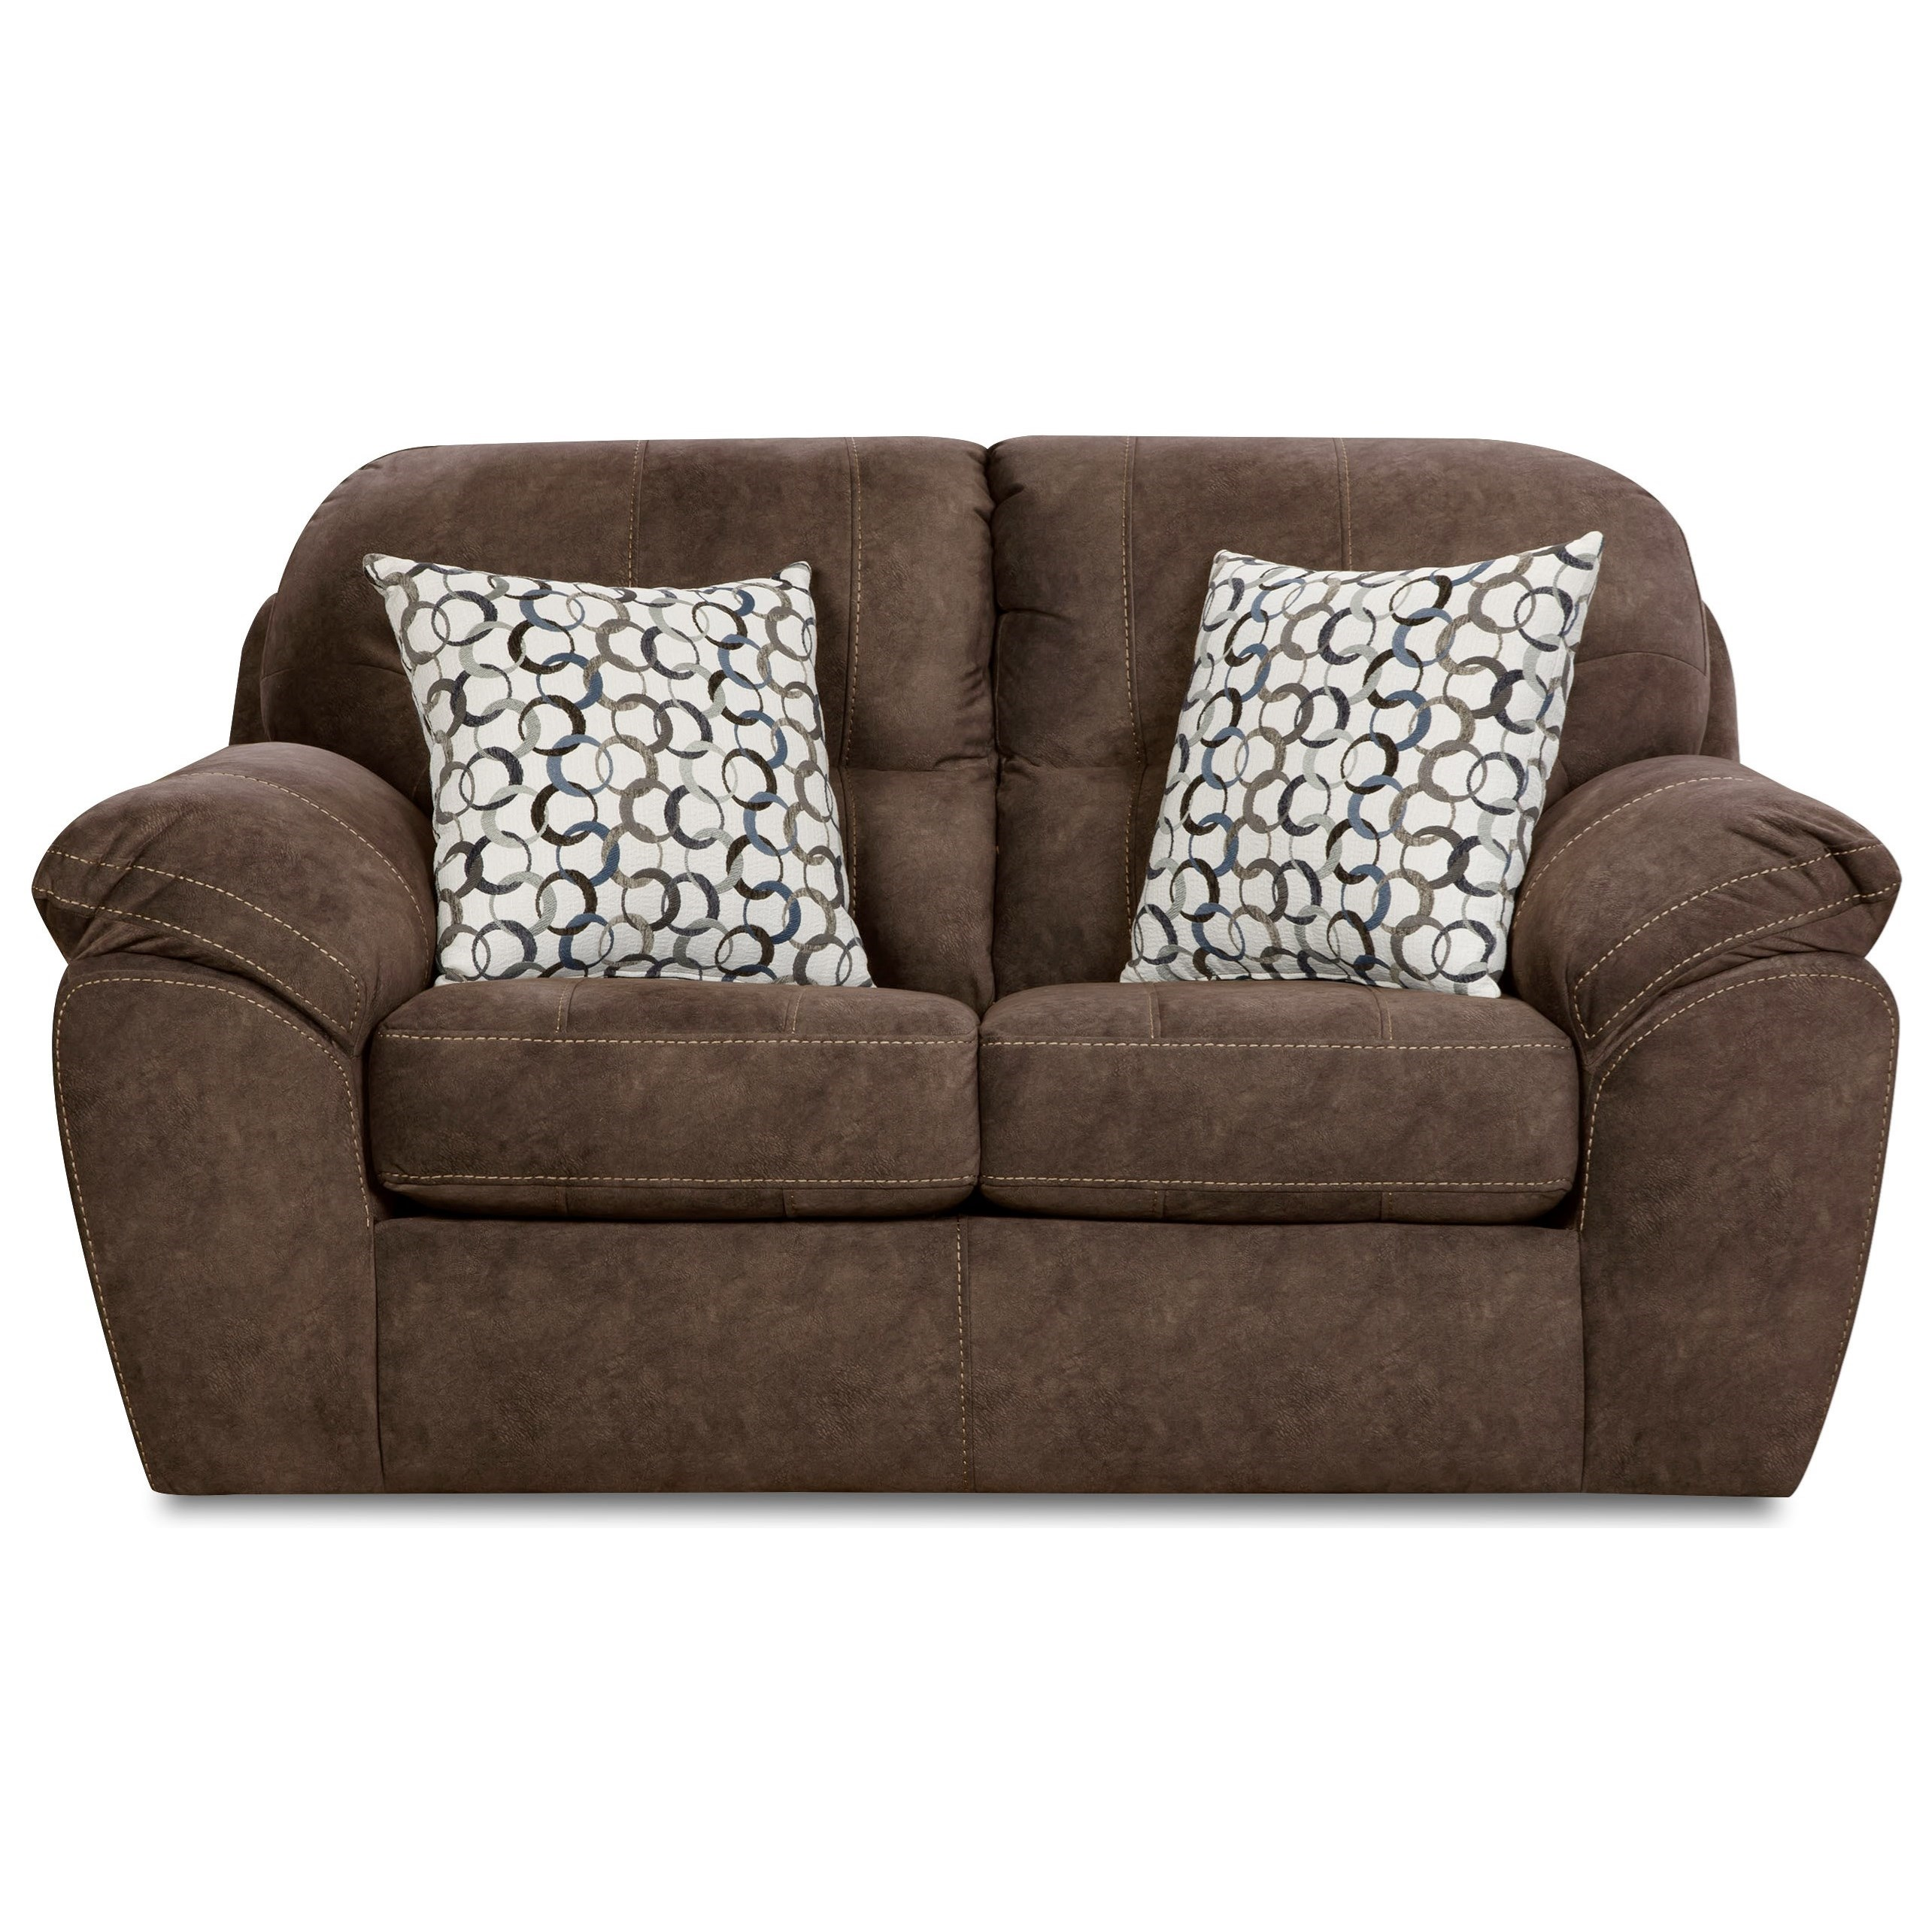 18D0 Loveseat by Corinthian at Story & Lee Furniture